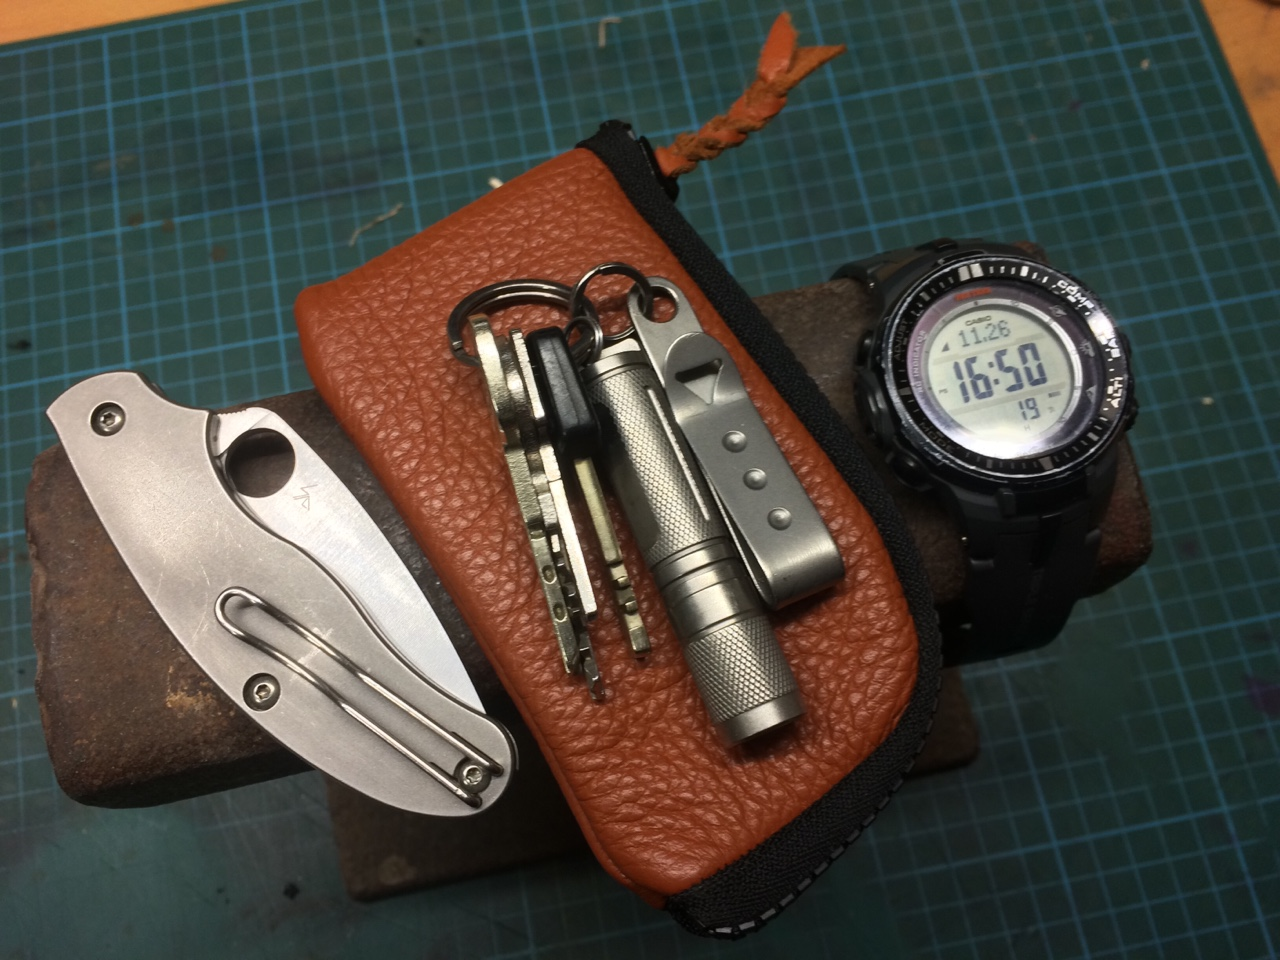 mpdwa: edc knife, wallet, keys with pocket clip and torch and watch